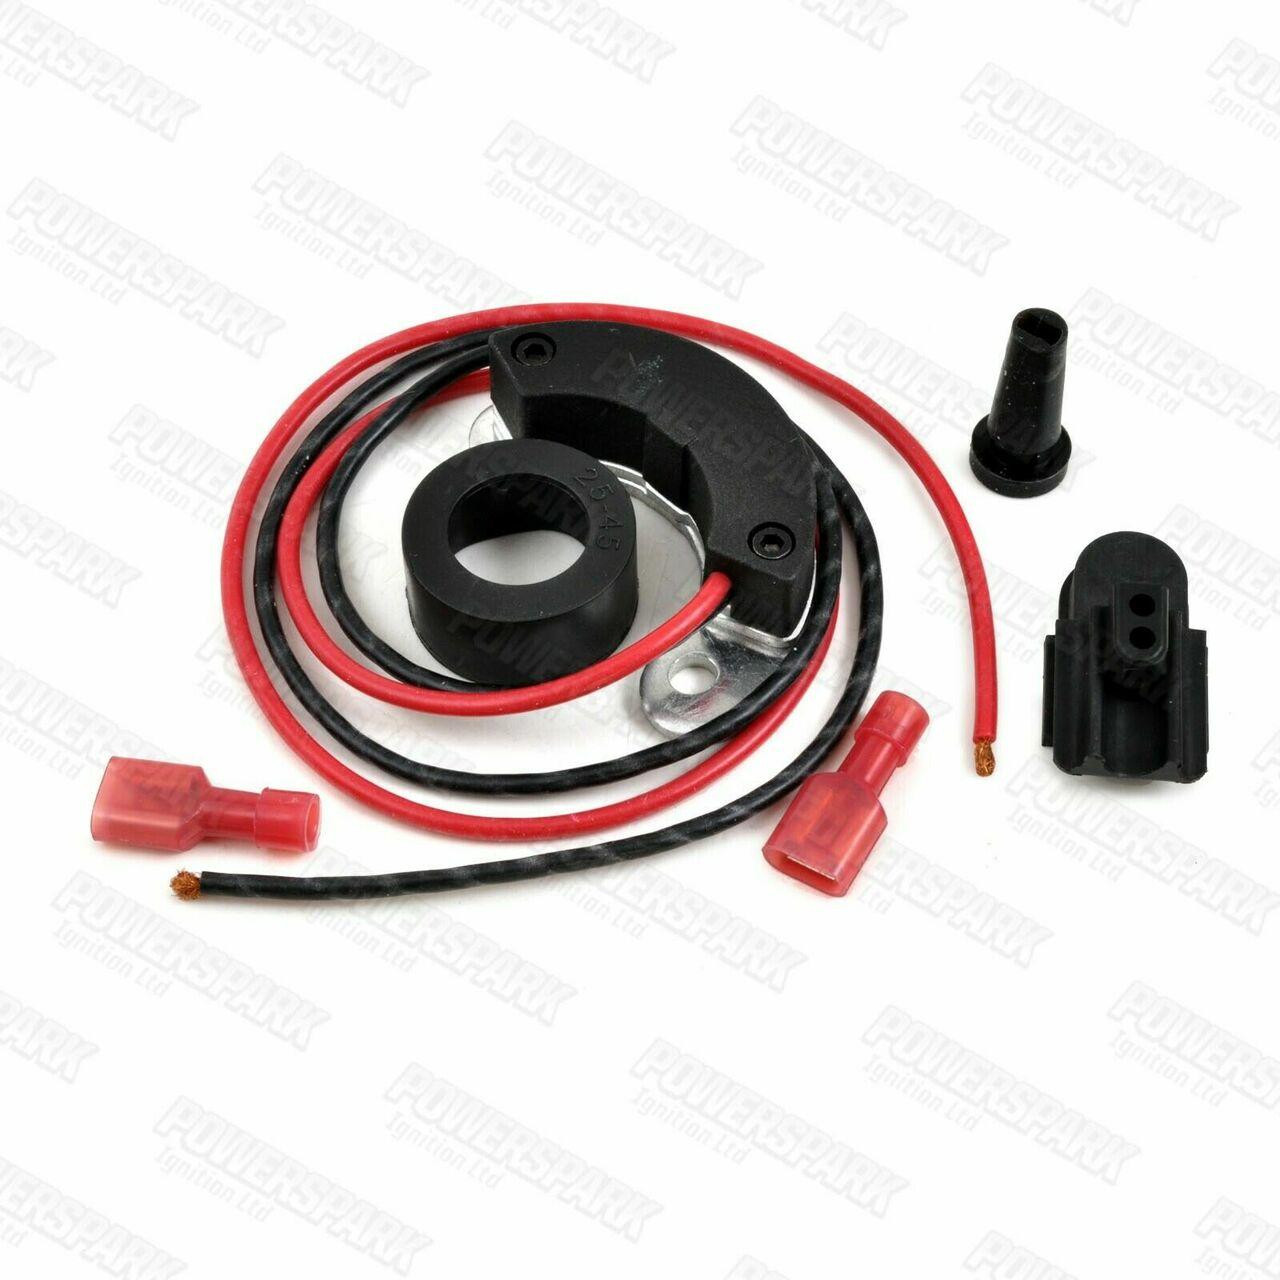 Sparkrite Sparkrite SX6000 Electronic ignition for All Lucas 25D and 45D 4 Cyl Distributors